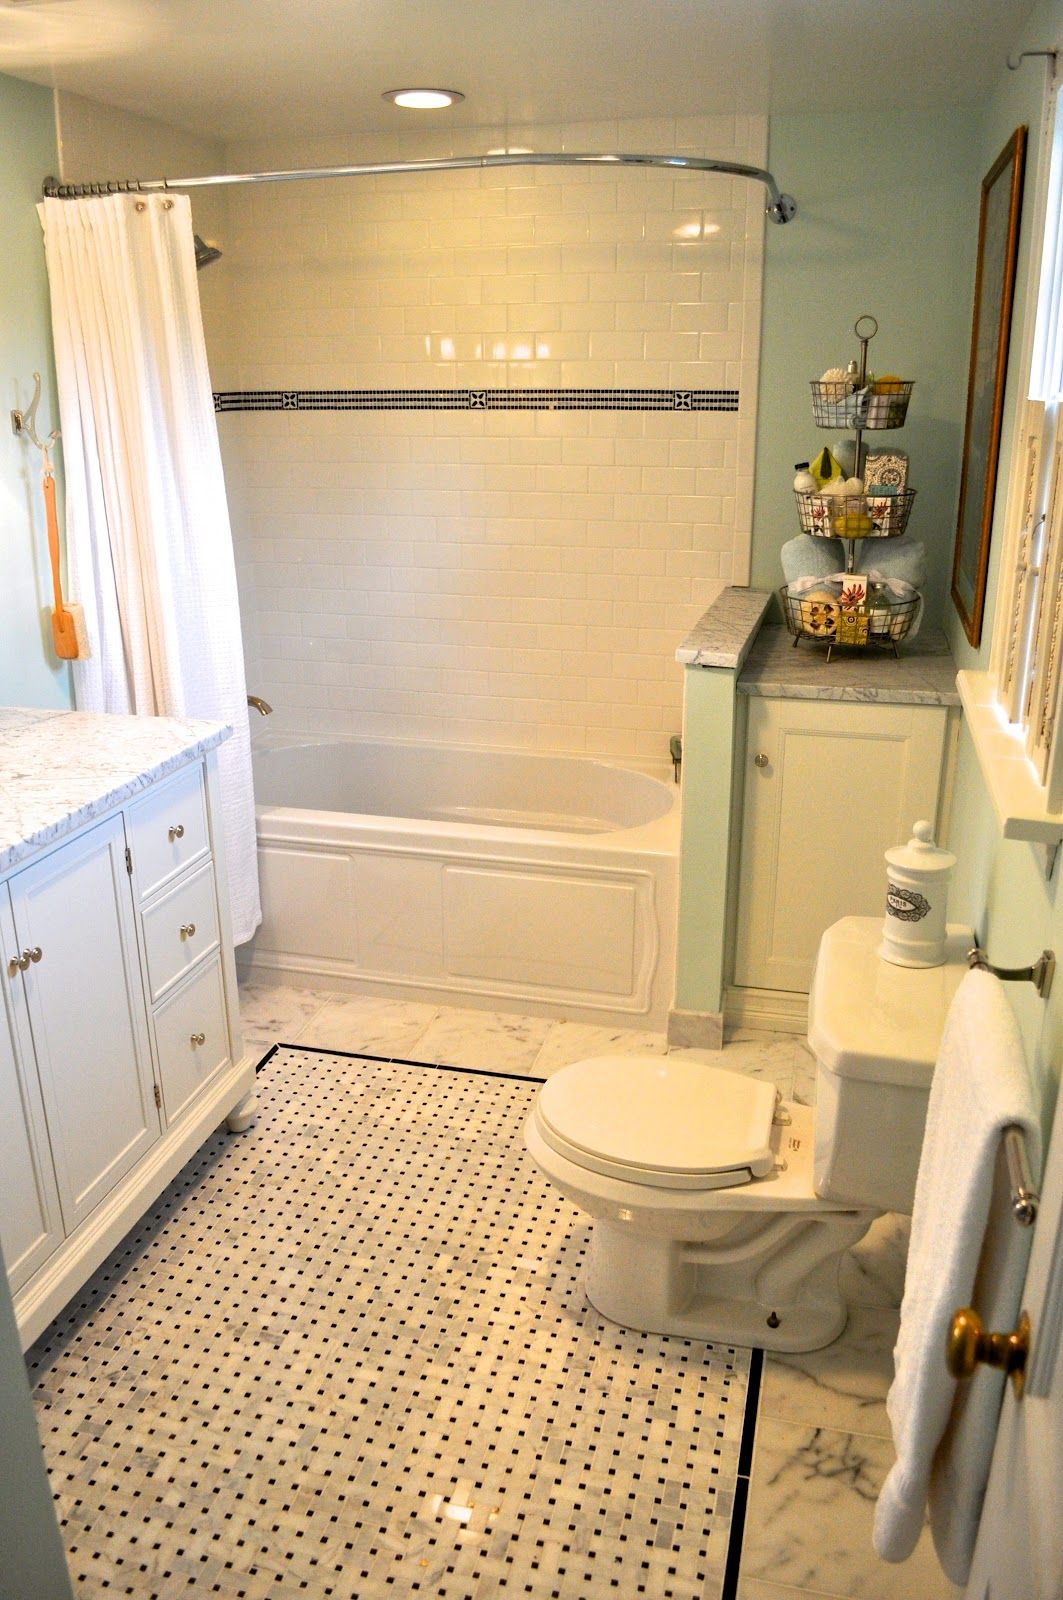 Wonderful Bathroom Shower Ideas Small Thin Shabby Chic Bath Shelves Shaped Silkroad Exclusive Pomona 72 Inch Double Sink Bathroom Vanity Install A Bath Spout Young Real Wood Bathroom Storage Cabinets RedBathroom Countertops With Sinks Lowes 1000  Images About 1920s Bathrooms On Pinterest | Toilets, 1920s ..